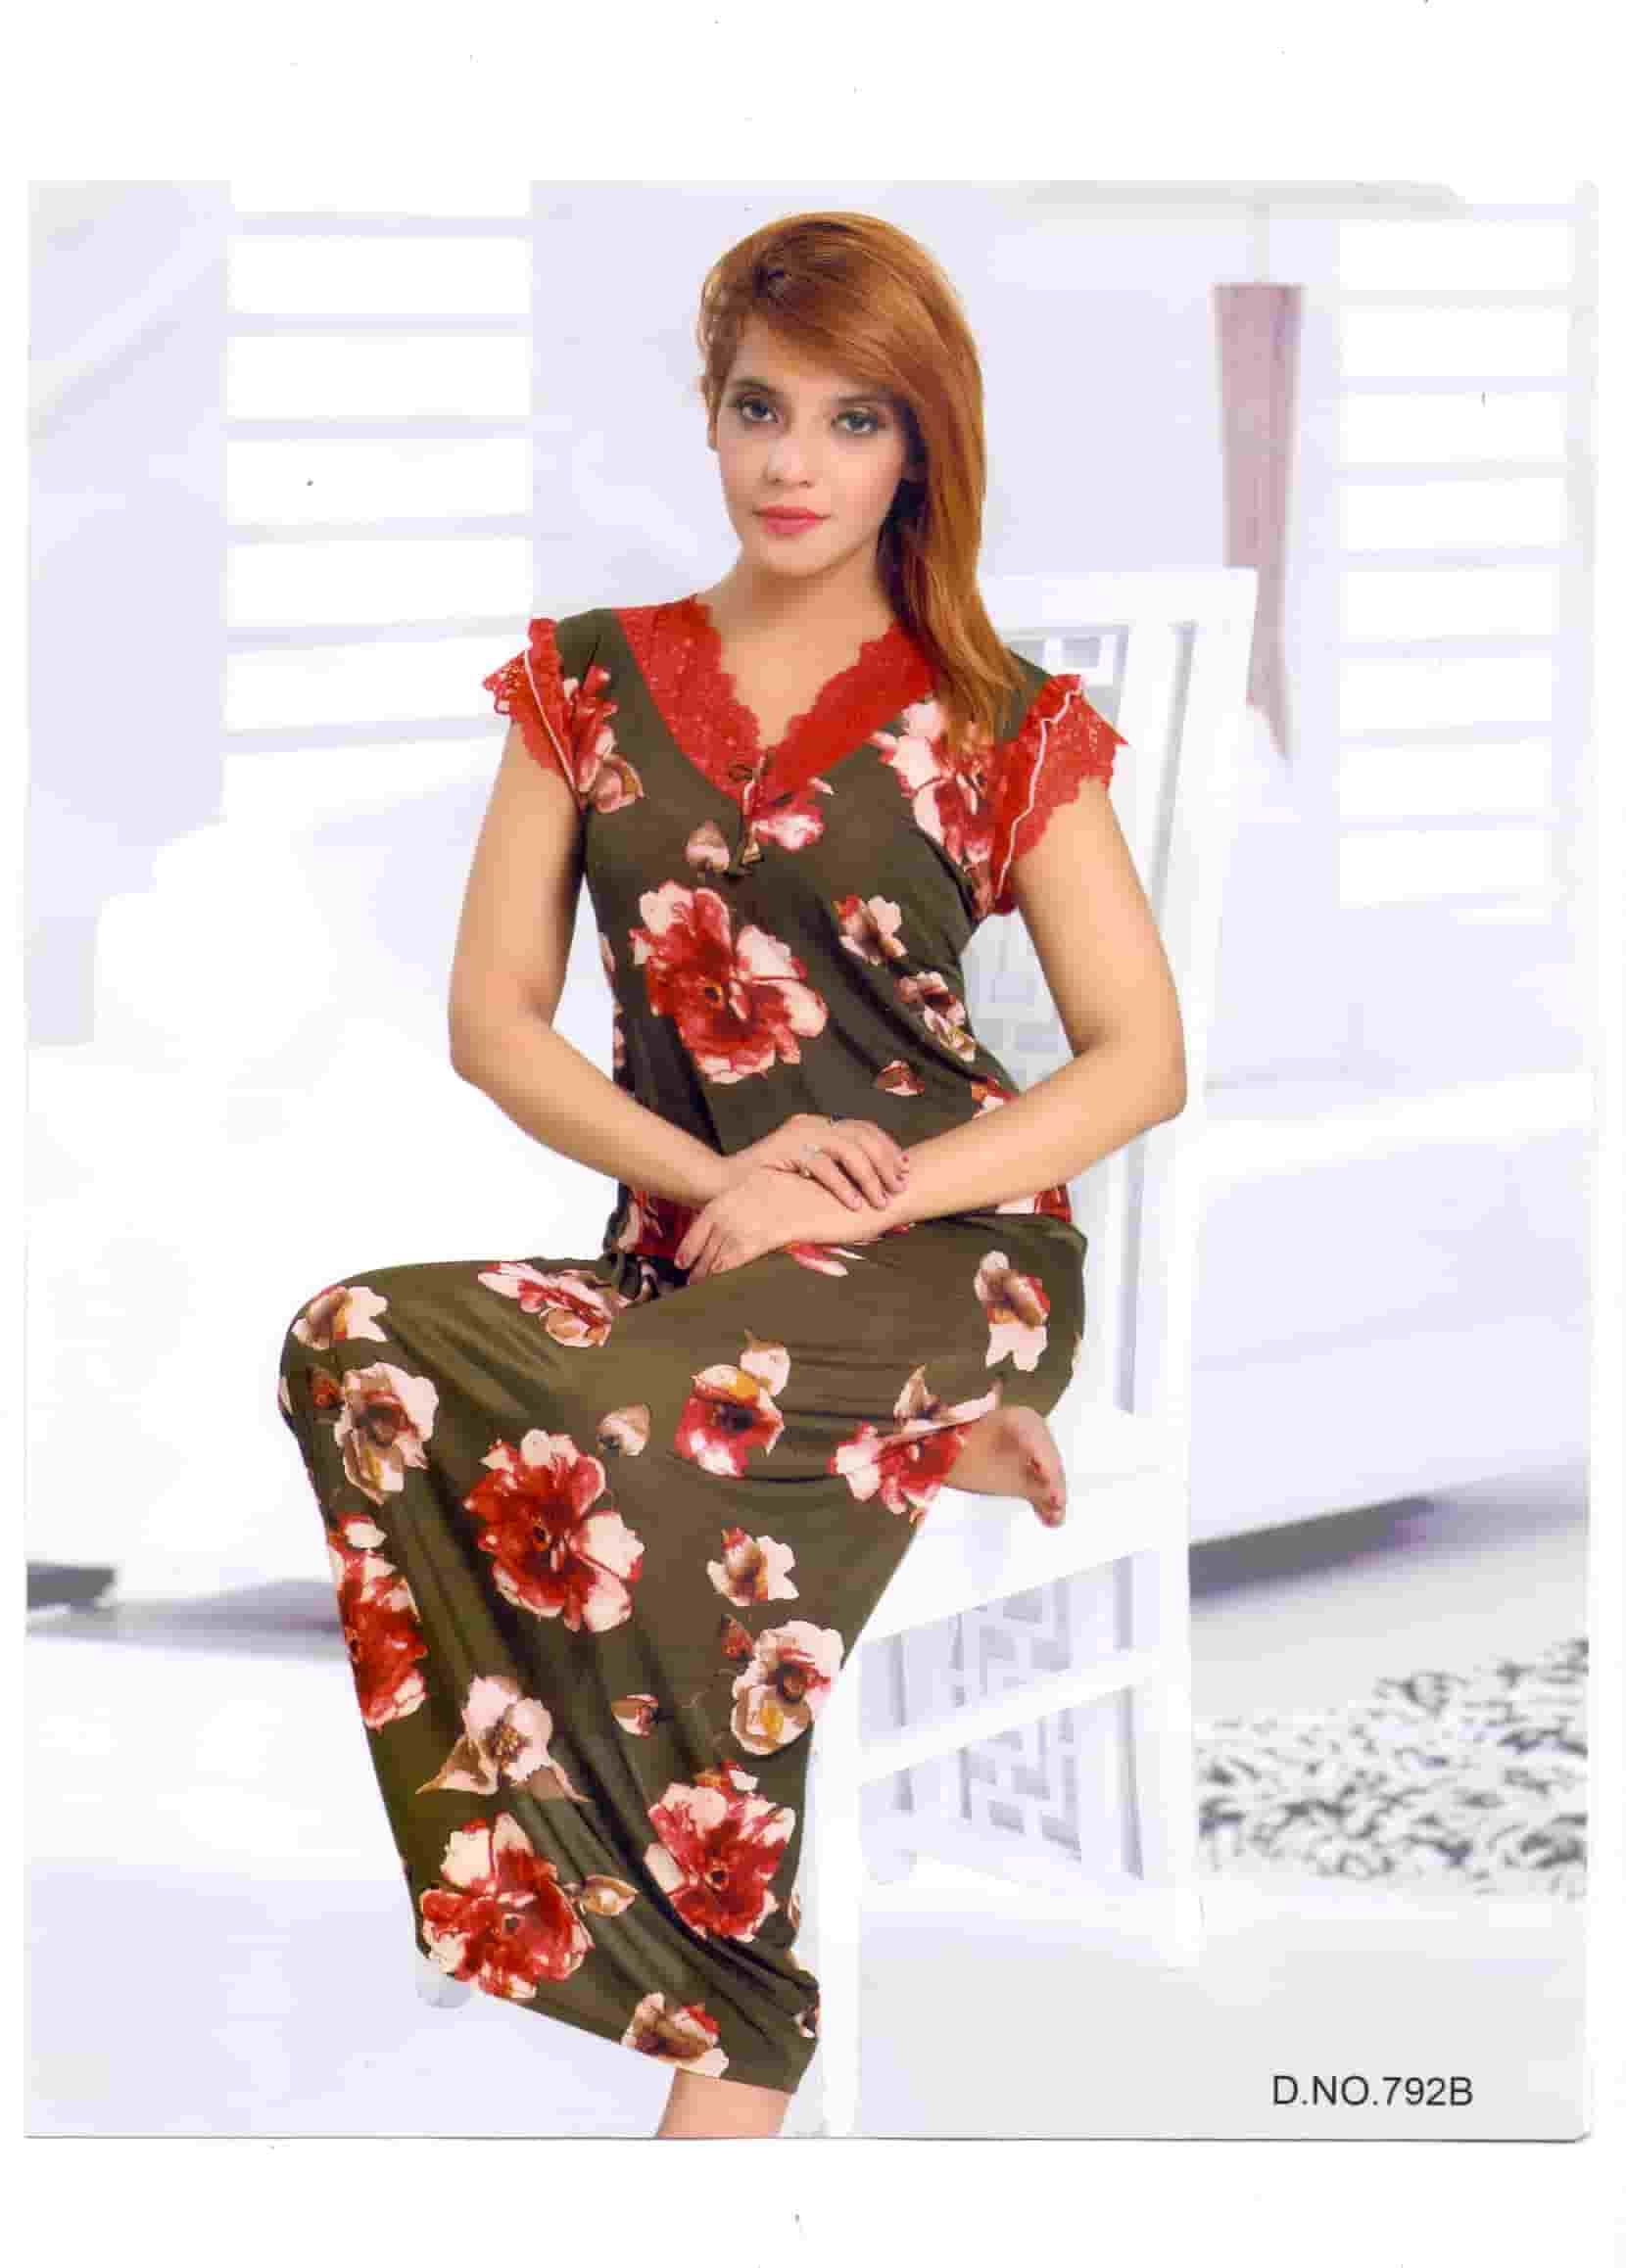 4f2c4b74d  Nightdresses - Buy  Nightdress from the  latest  collection  Online. Buy   Nighty